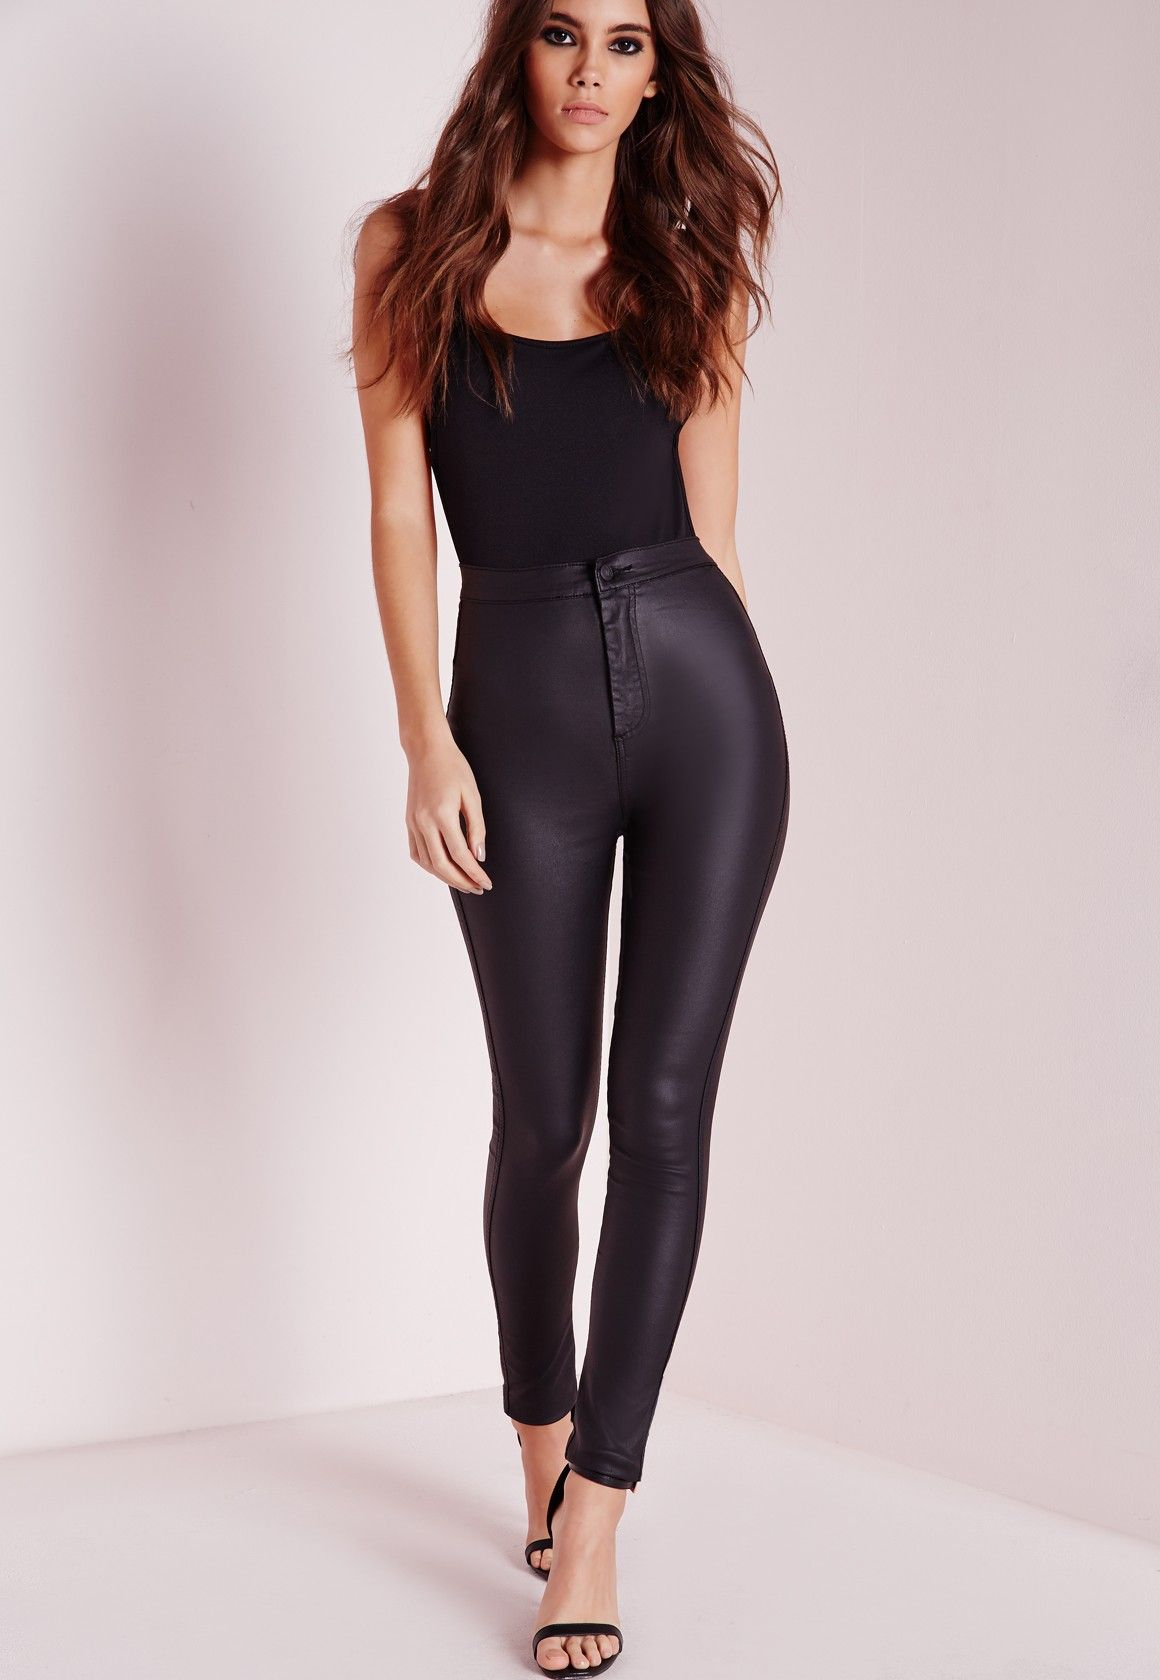 7afedf985b02 Missguided - Vice Super Stretch Wet Look High Waisted Coated Skinny Jeans  Black